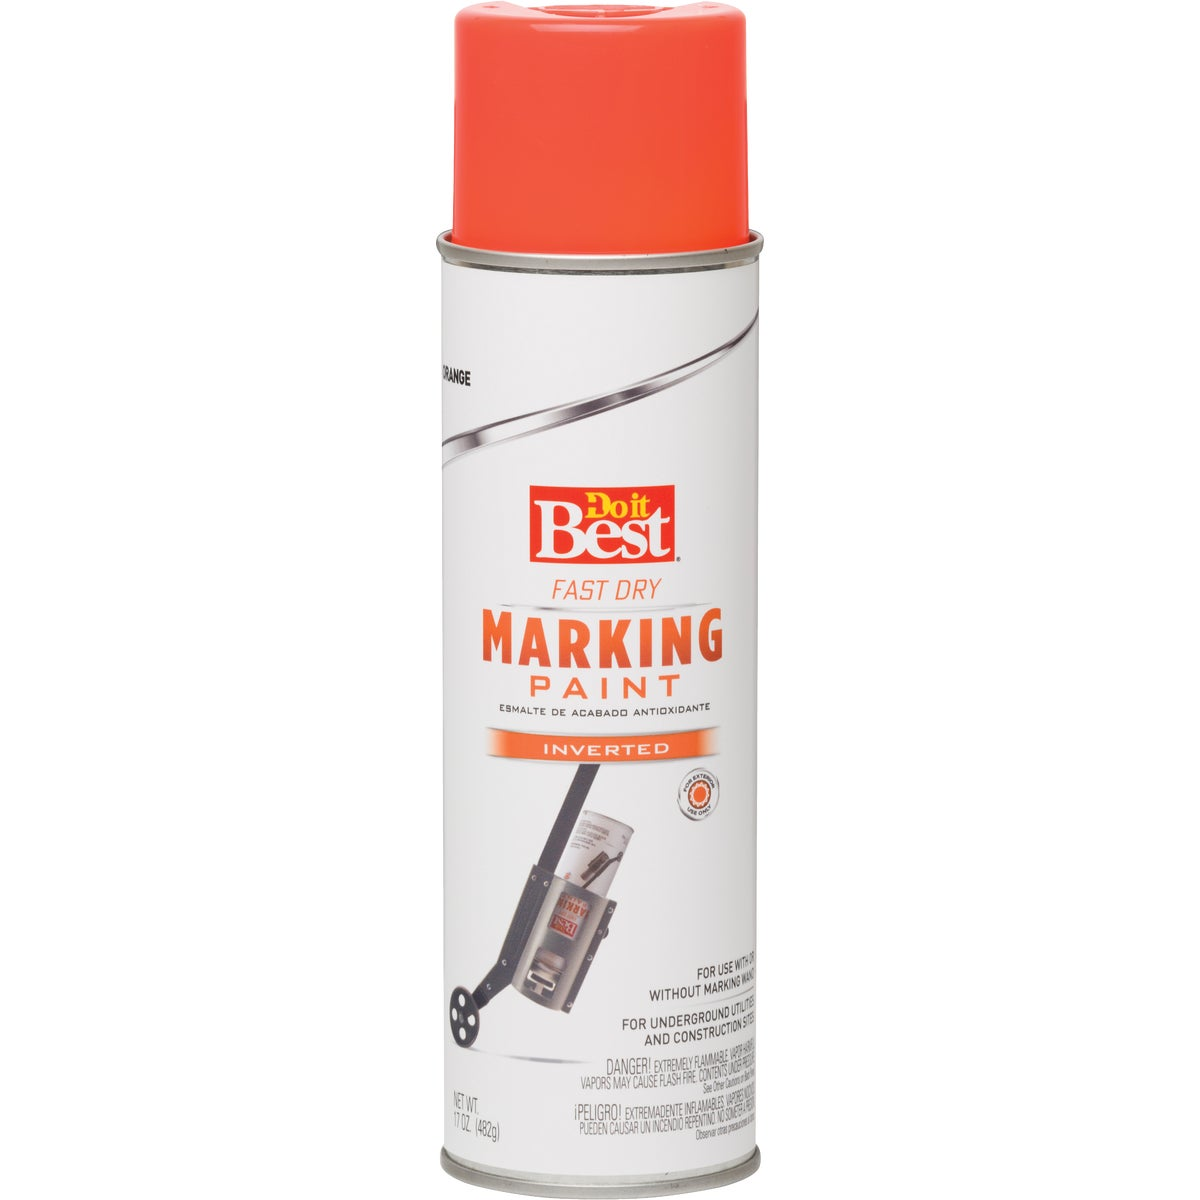 ORANGE MARKING PAINT - 4001 by Rustoleum